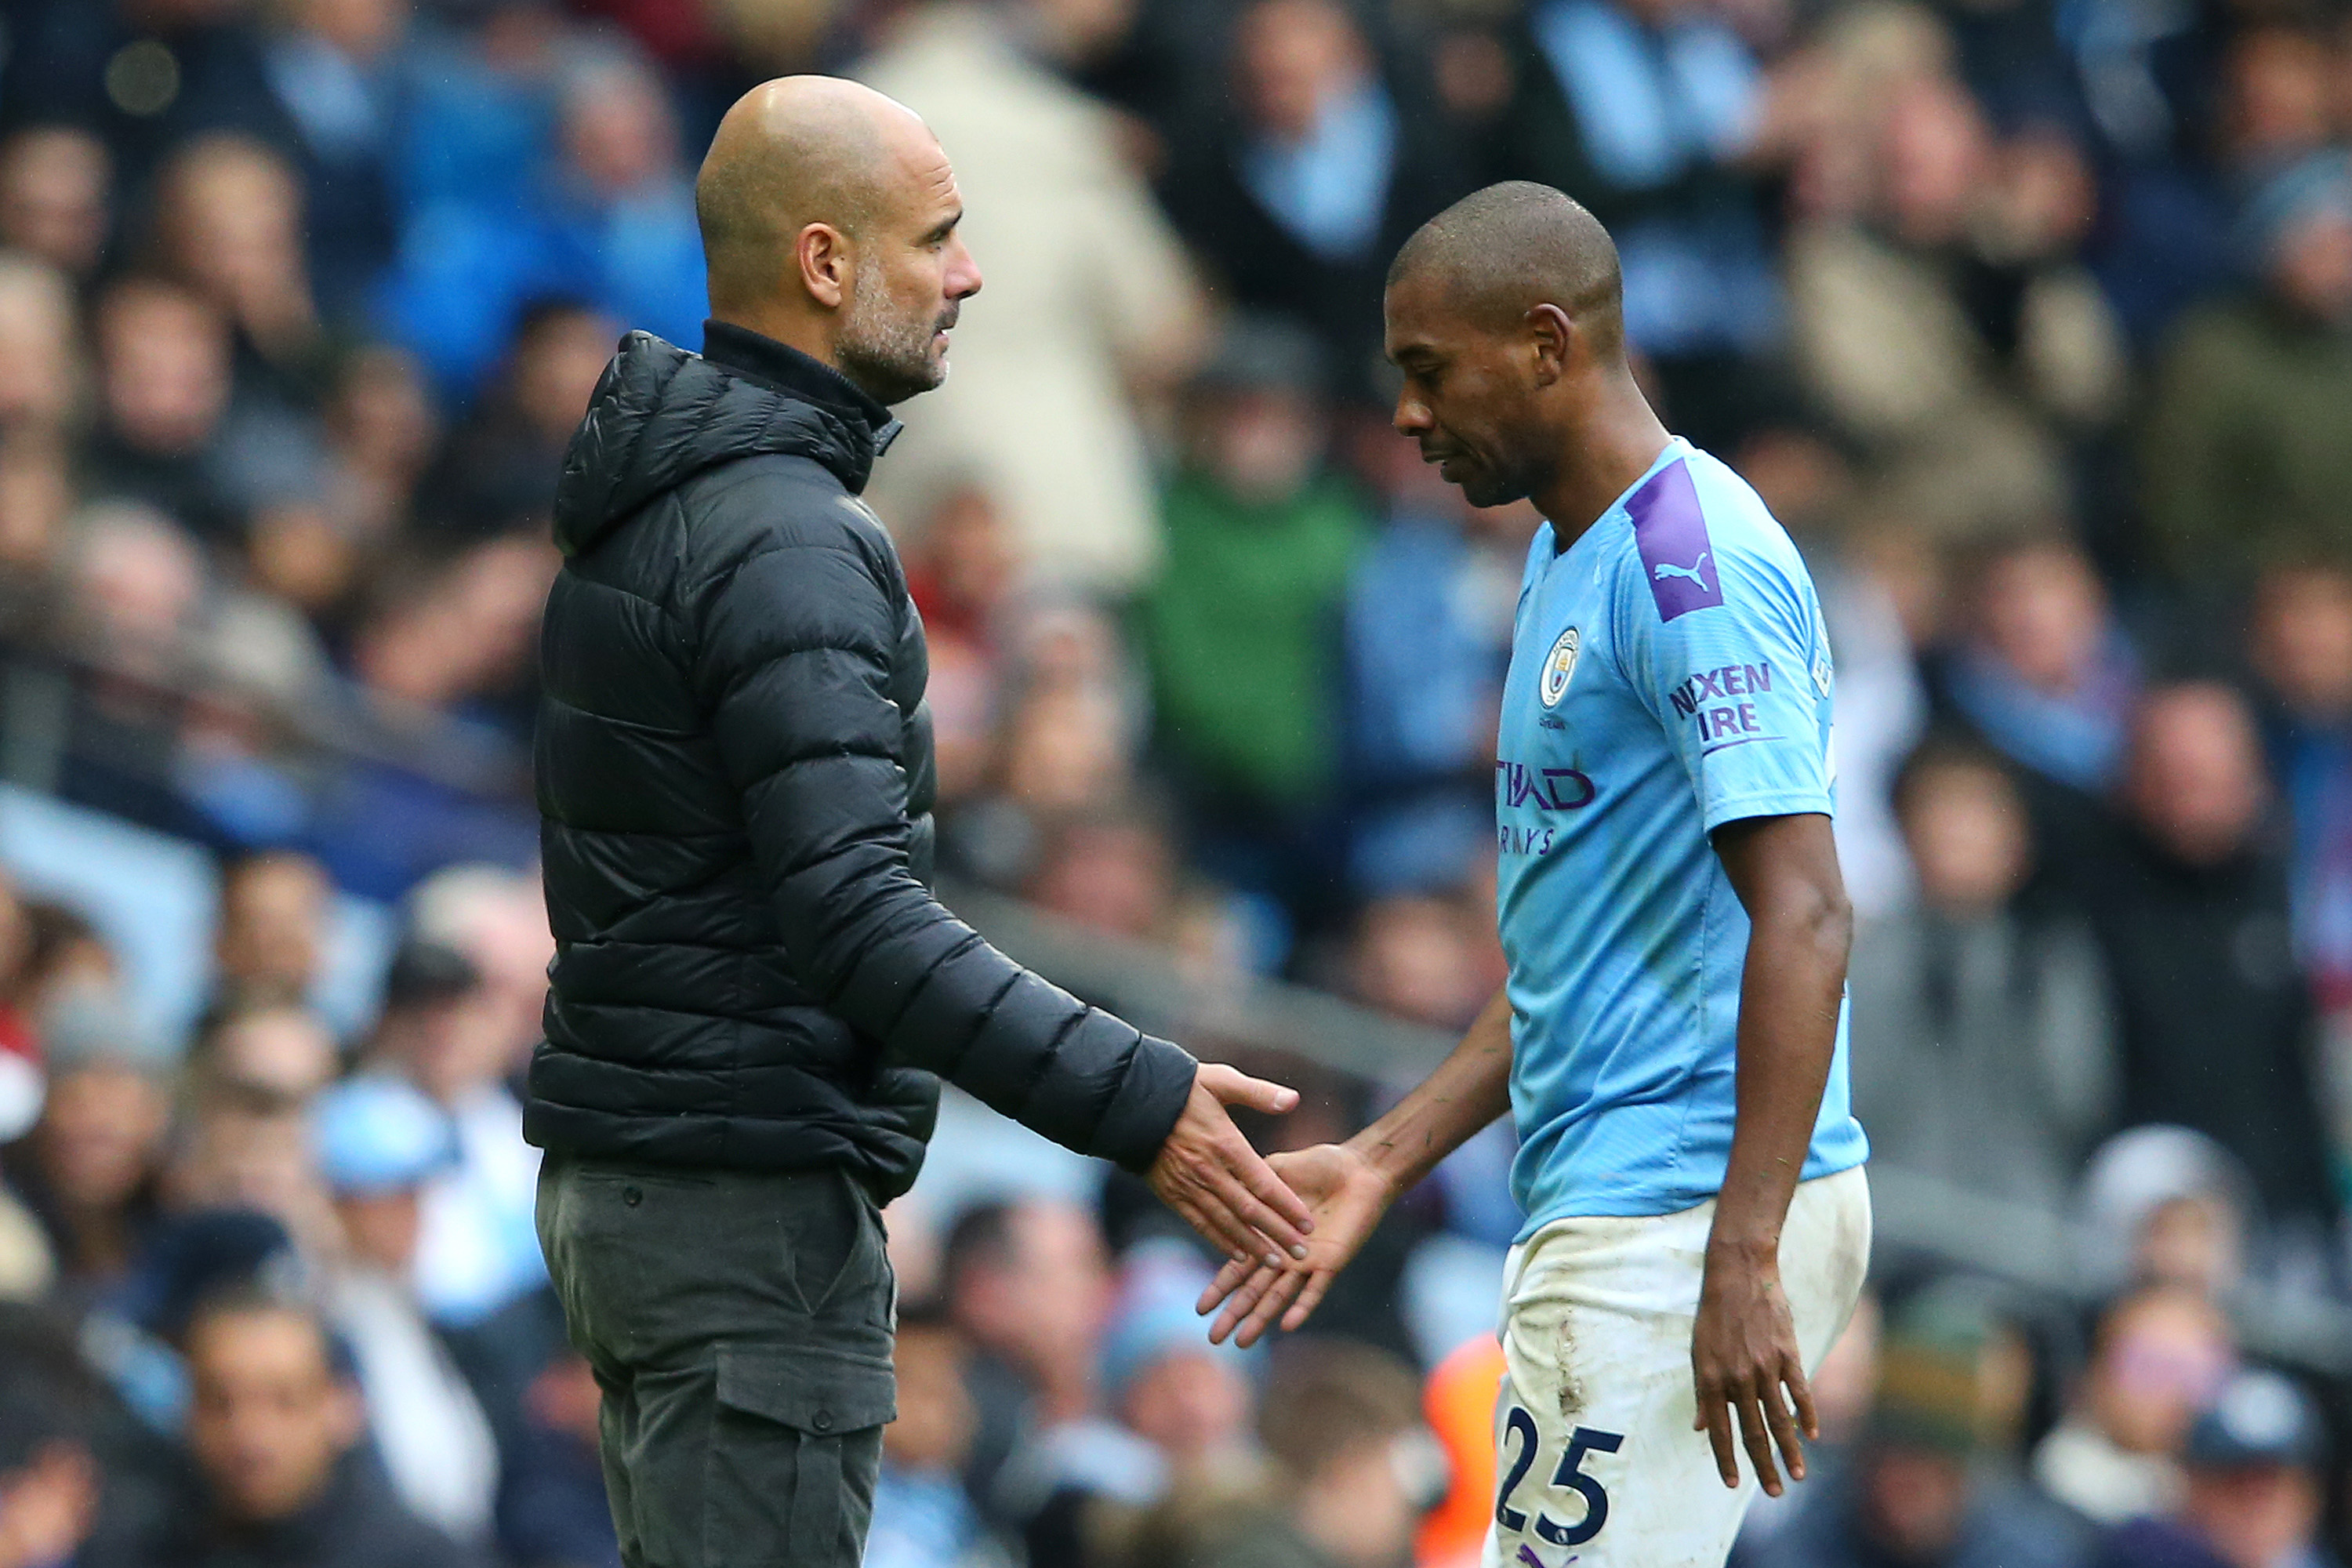 Pep Guardiola will once again have to cope with the absence of Fernandinho (Photo by Alex Livesey/Getty Images)